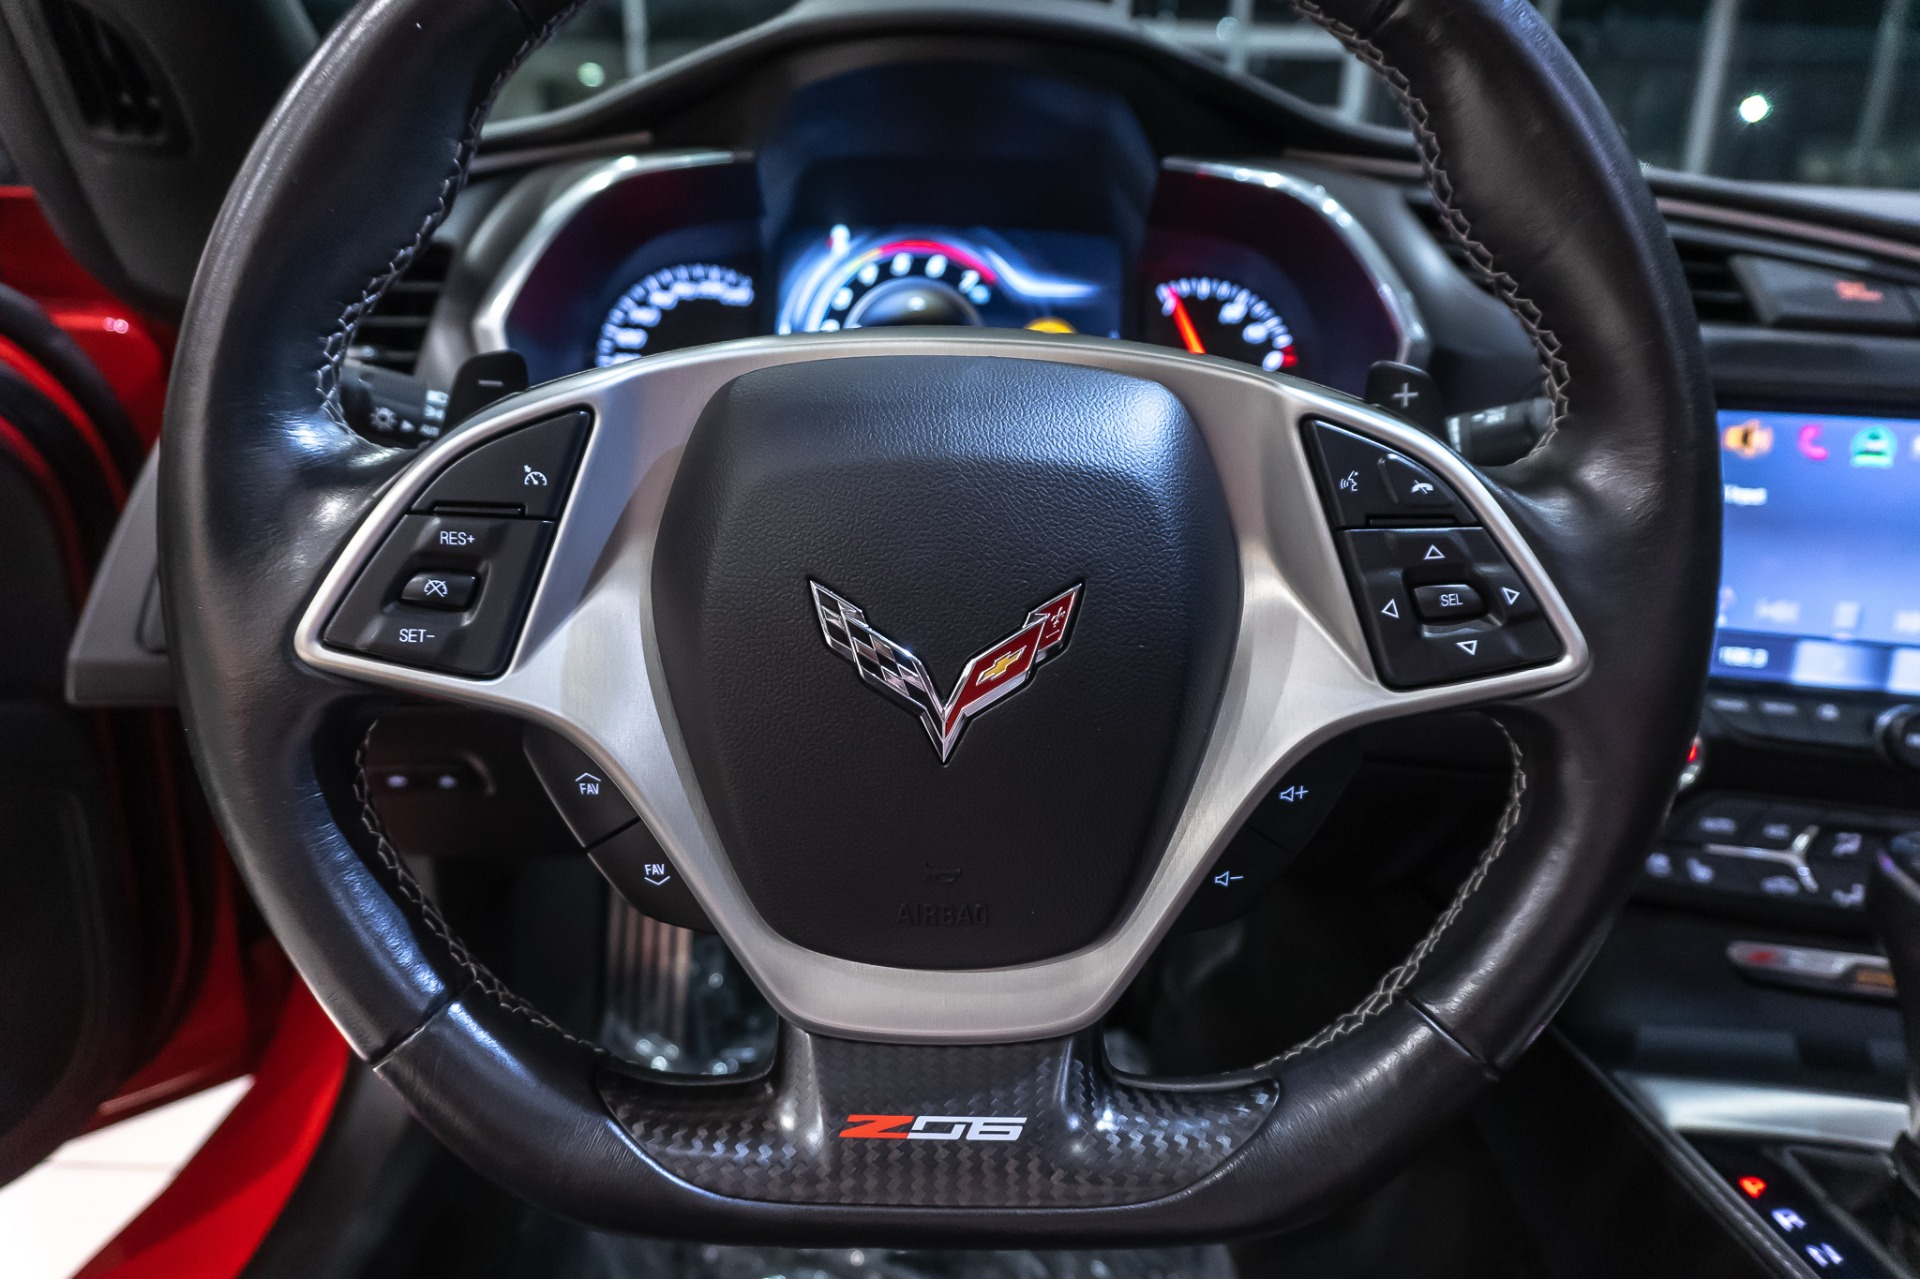 Used-2016-Chevrolet-Corvette-Z06-2LZ-Convertible-MSRP-96970-CARBON-FLASH-GROUND-EFFECTS